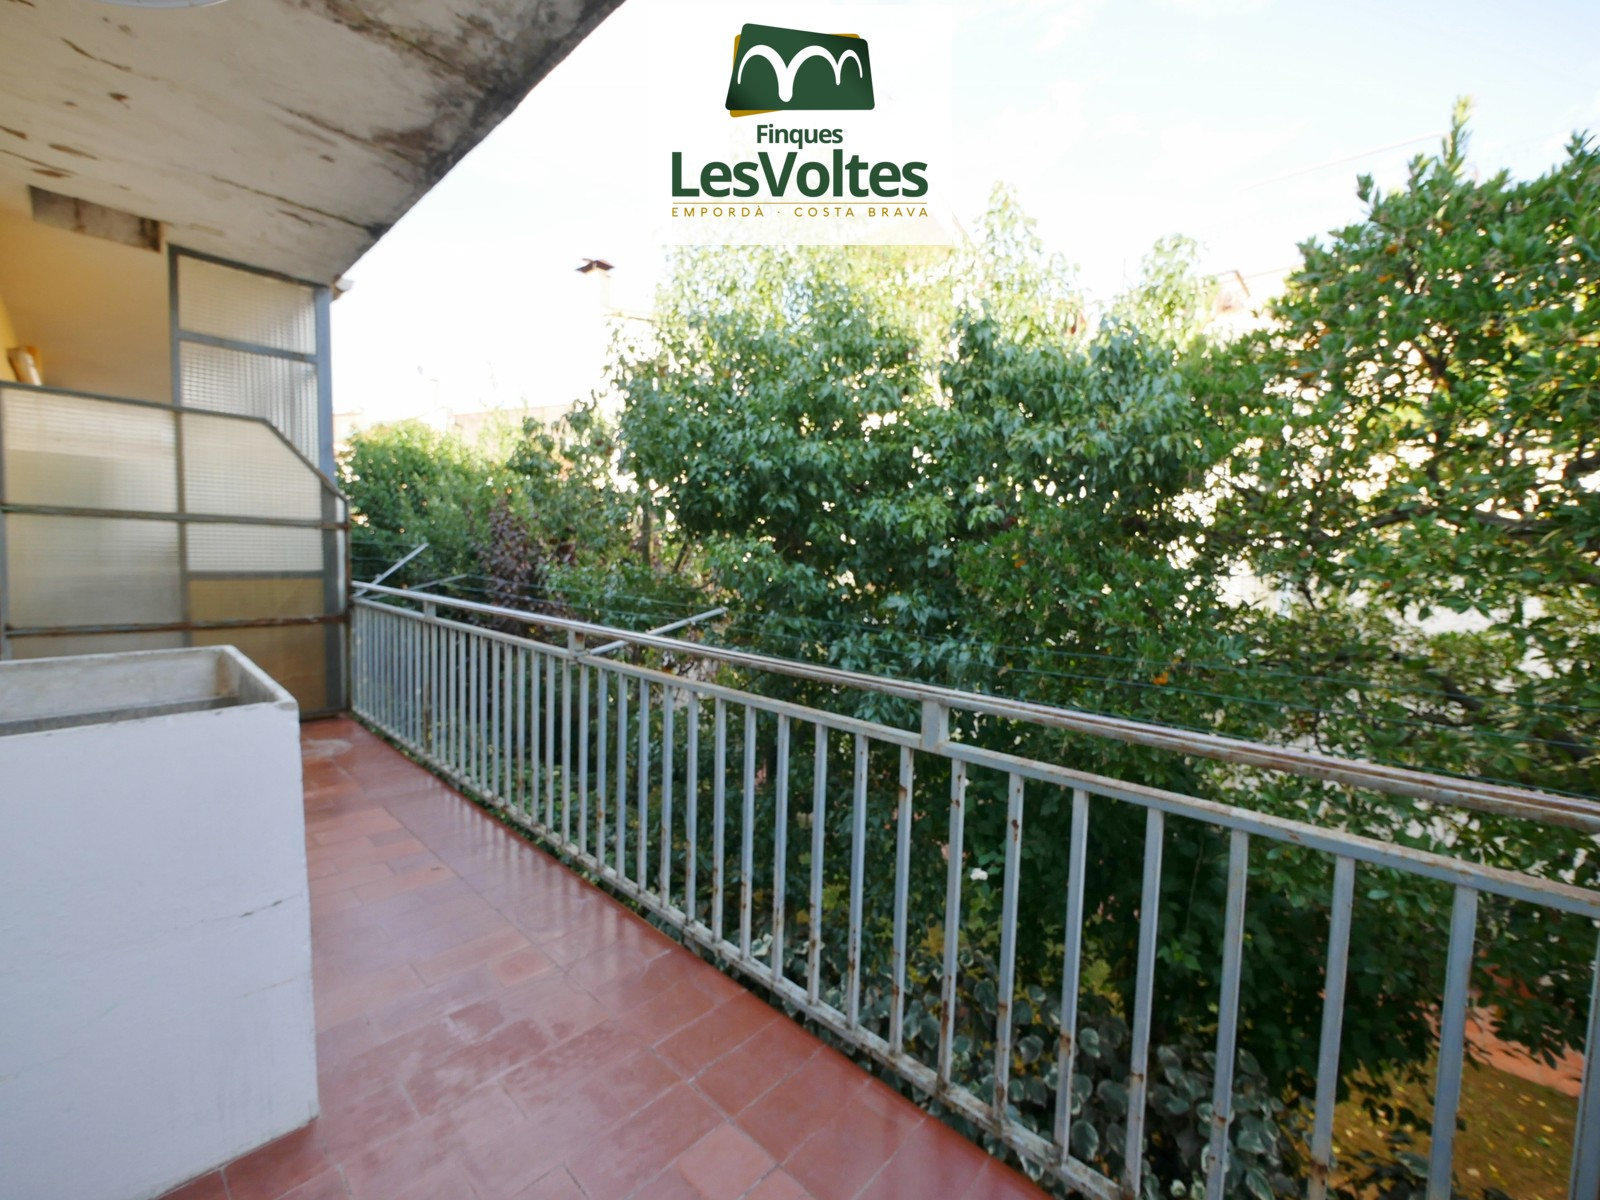 81 M2 APARTMENT TO REFORM ON THE FIRST FLOOR WITHOUT ELEVATOR, WITH 3 BEDROOMS AND TERRACE FOR SALE IN LA BISBAL D'EMPORDÀ.